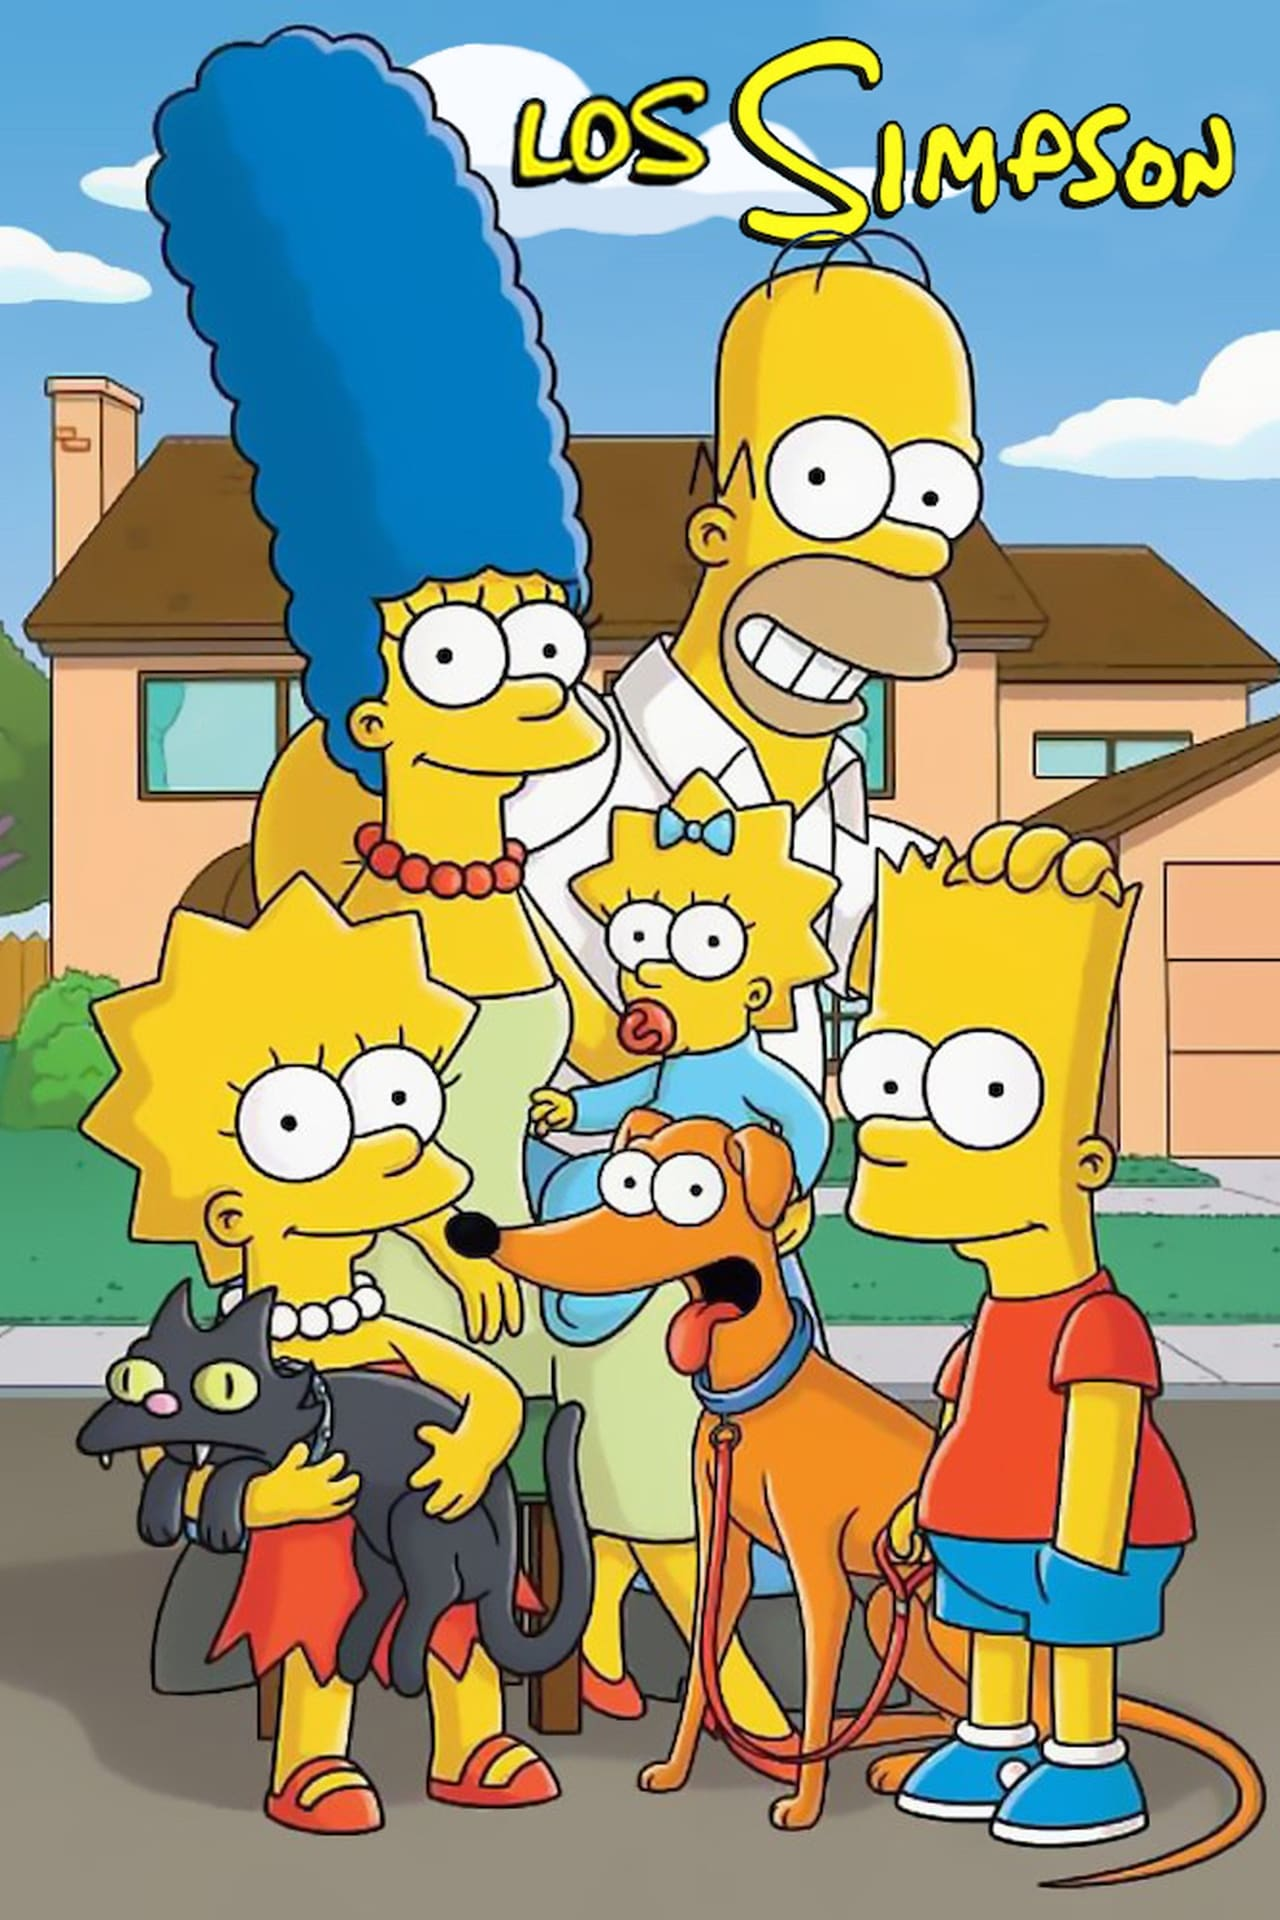 Los Simpson - Season 2 Episode 8 : Bart el temerario